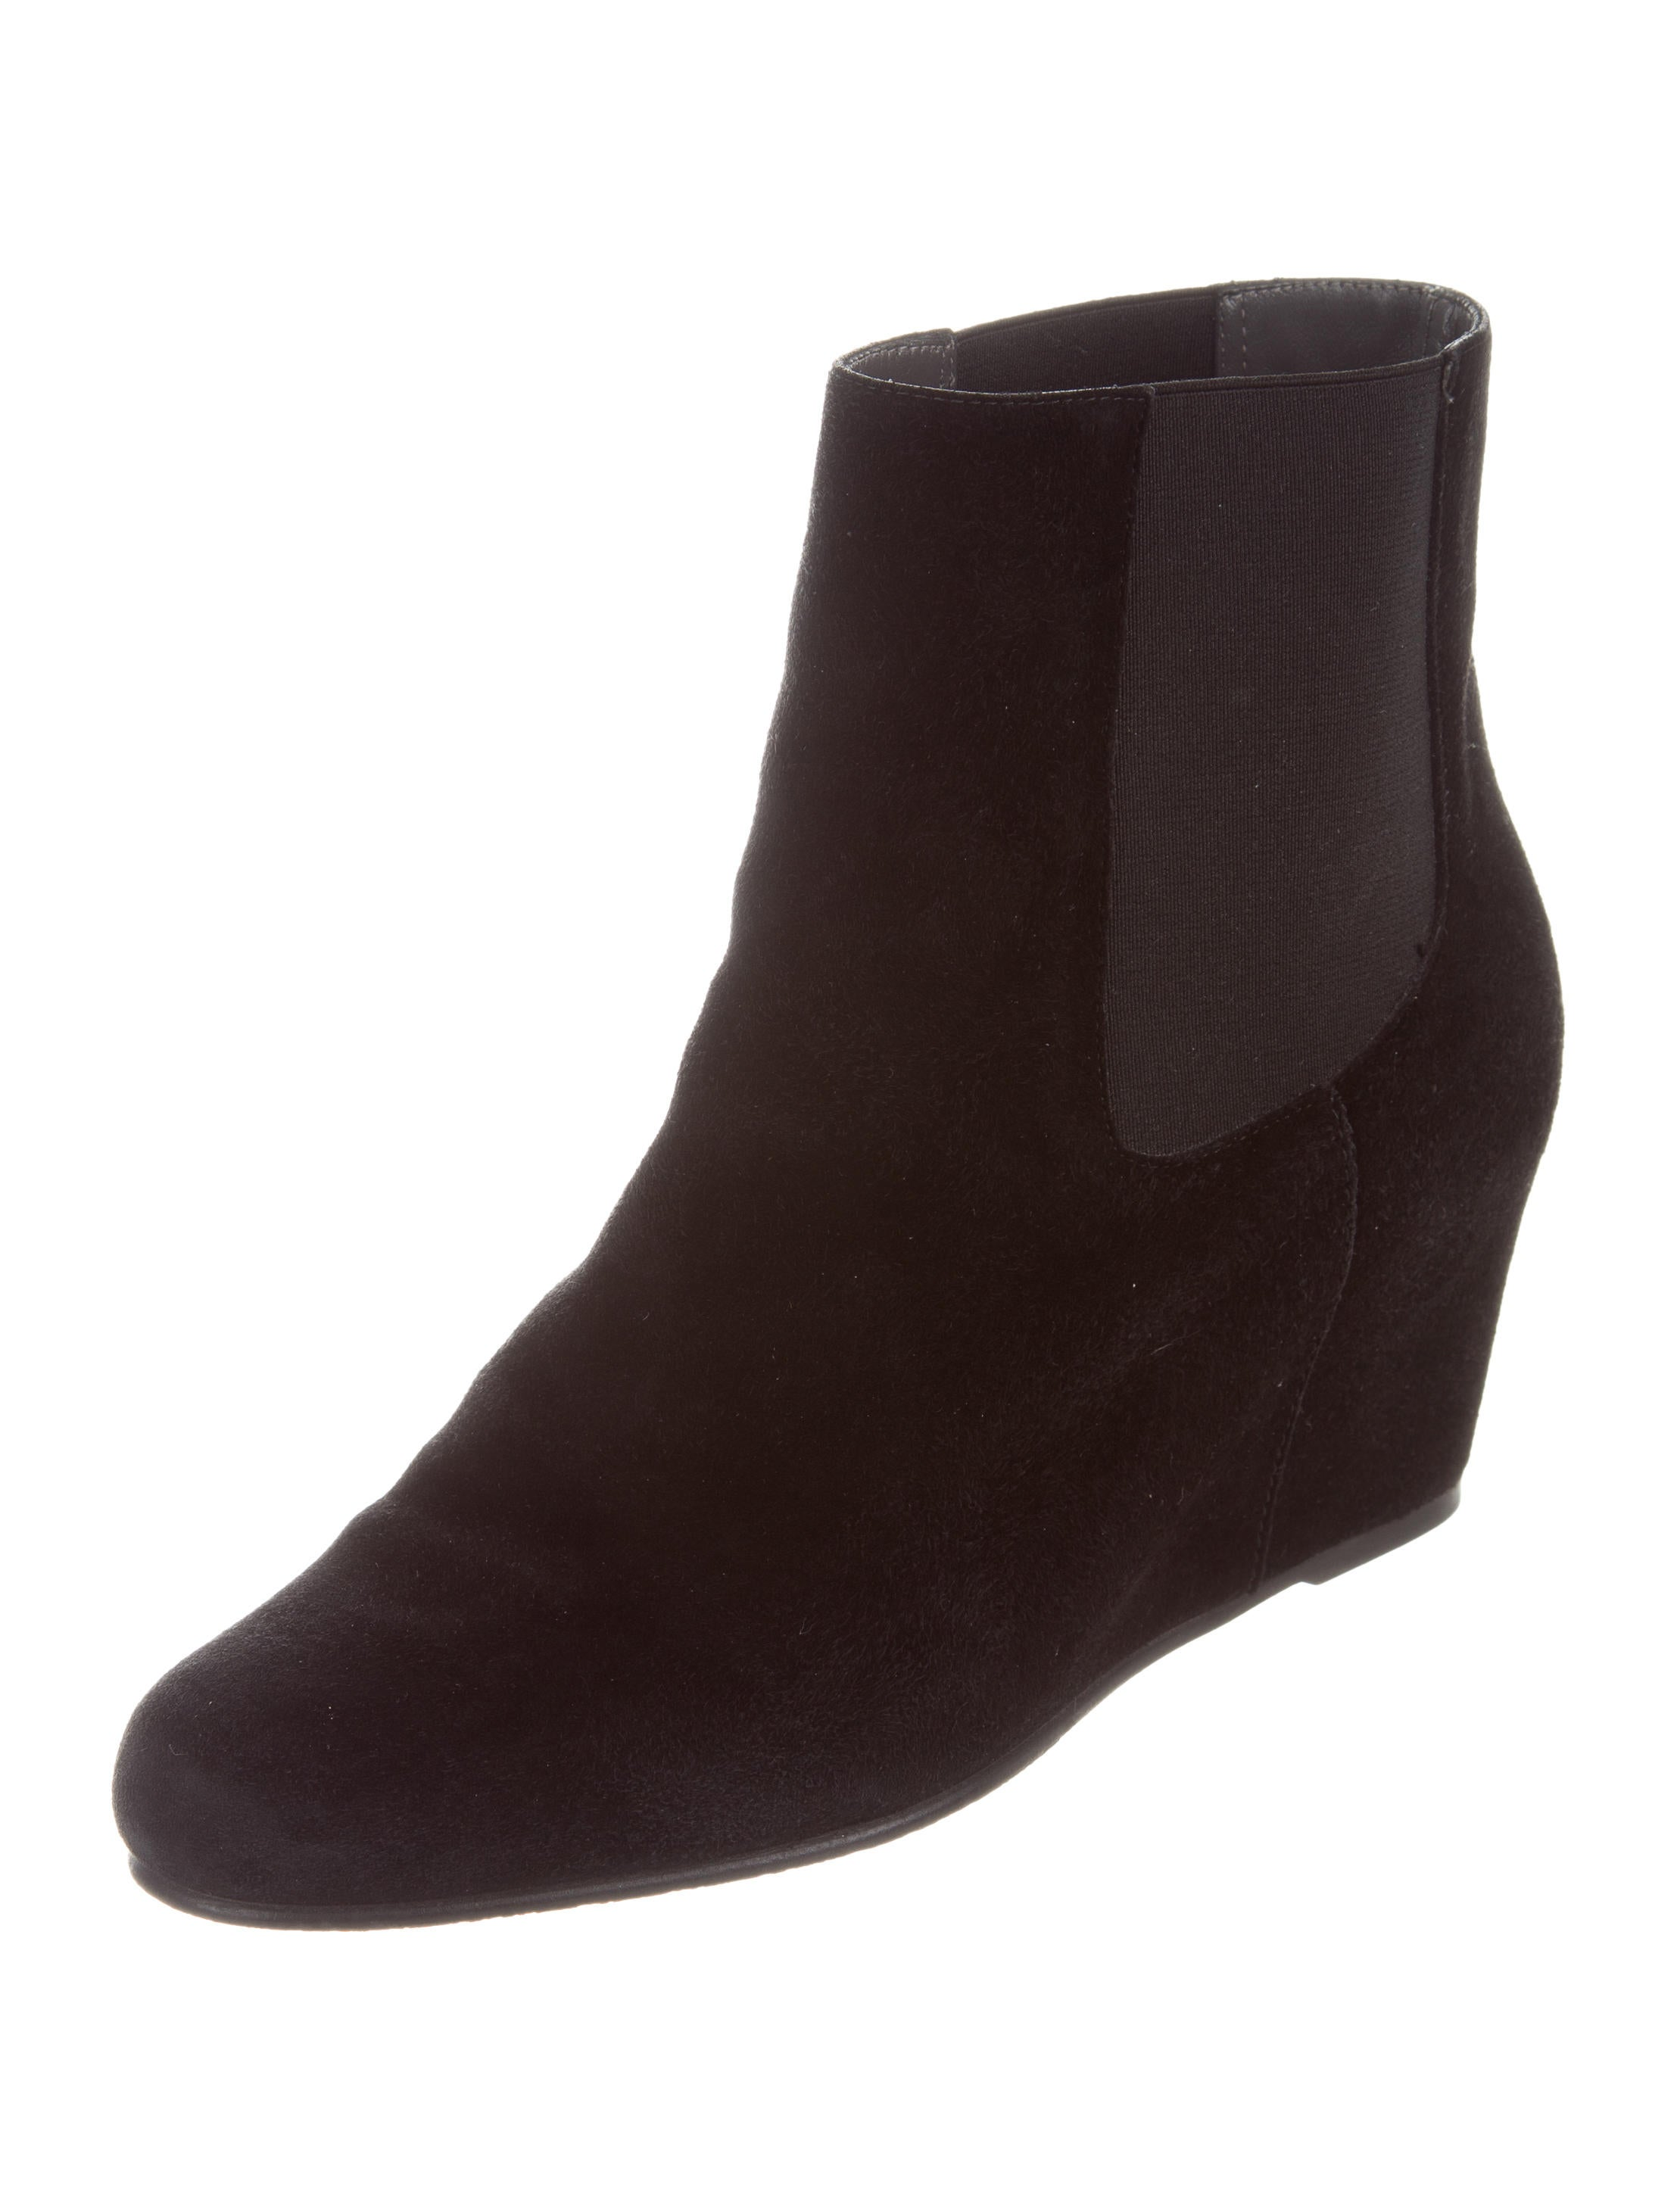 stuart weitzman suede wedge ankle boots shoes wsu35132